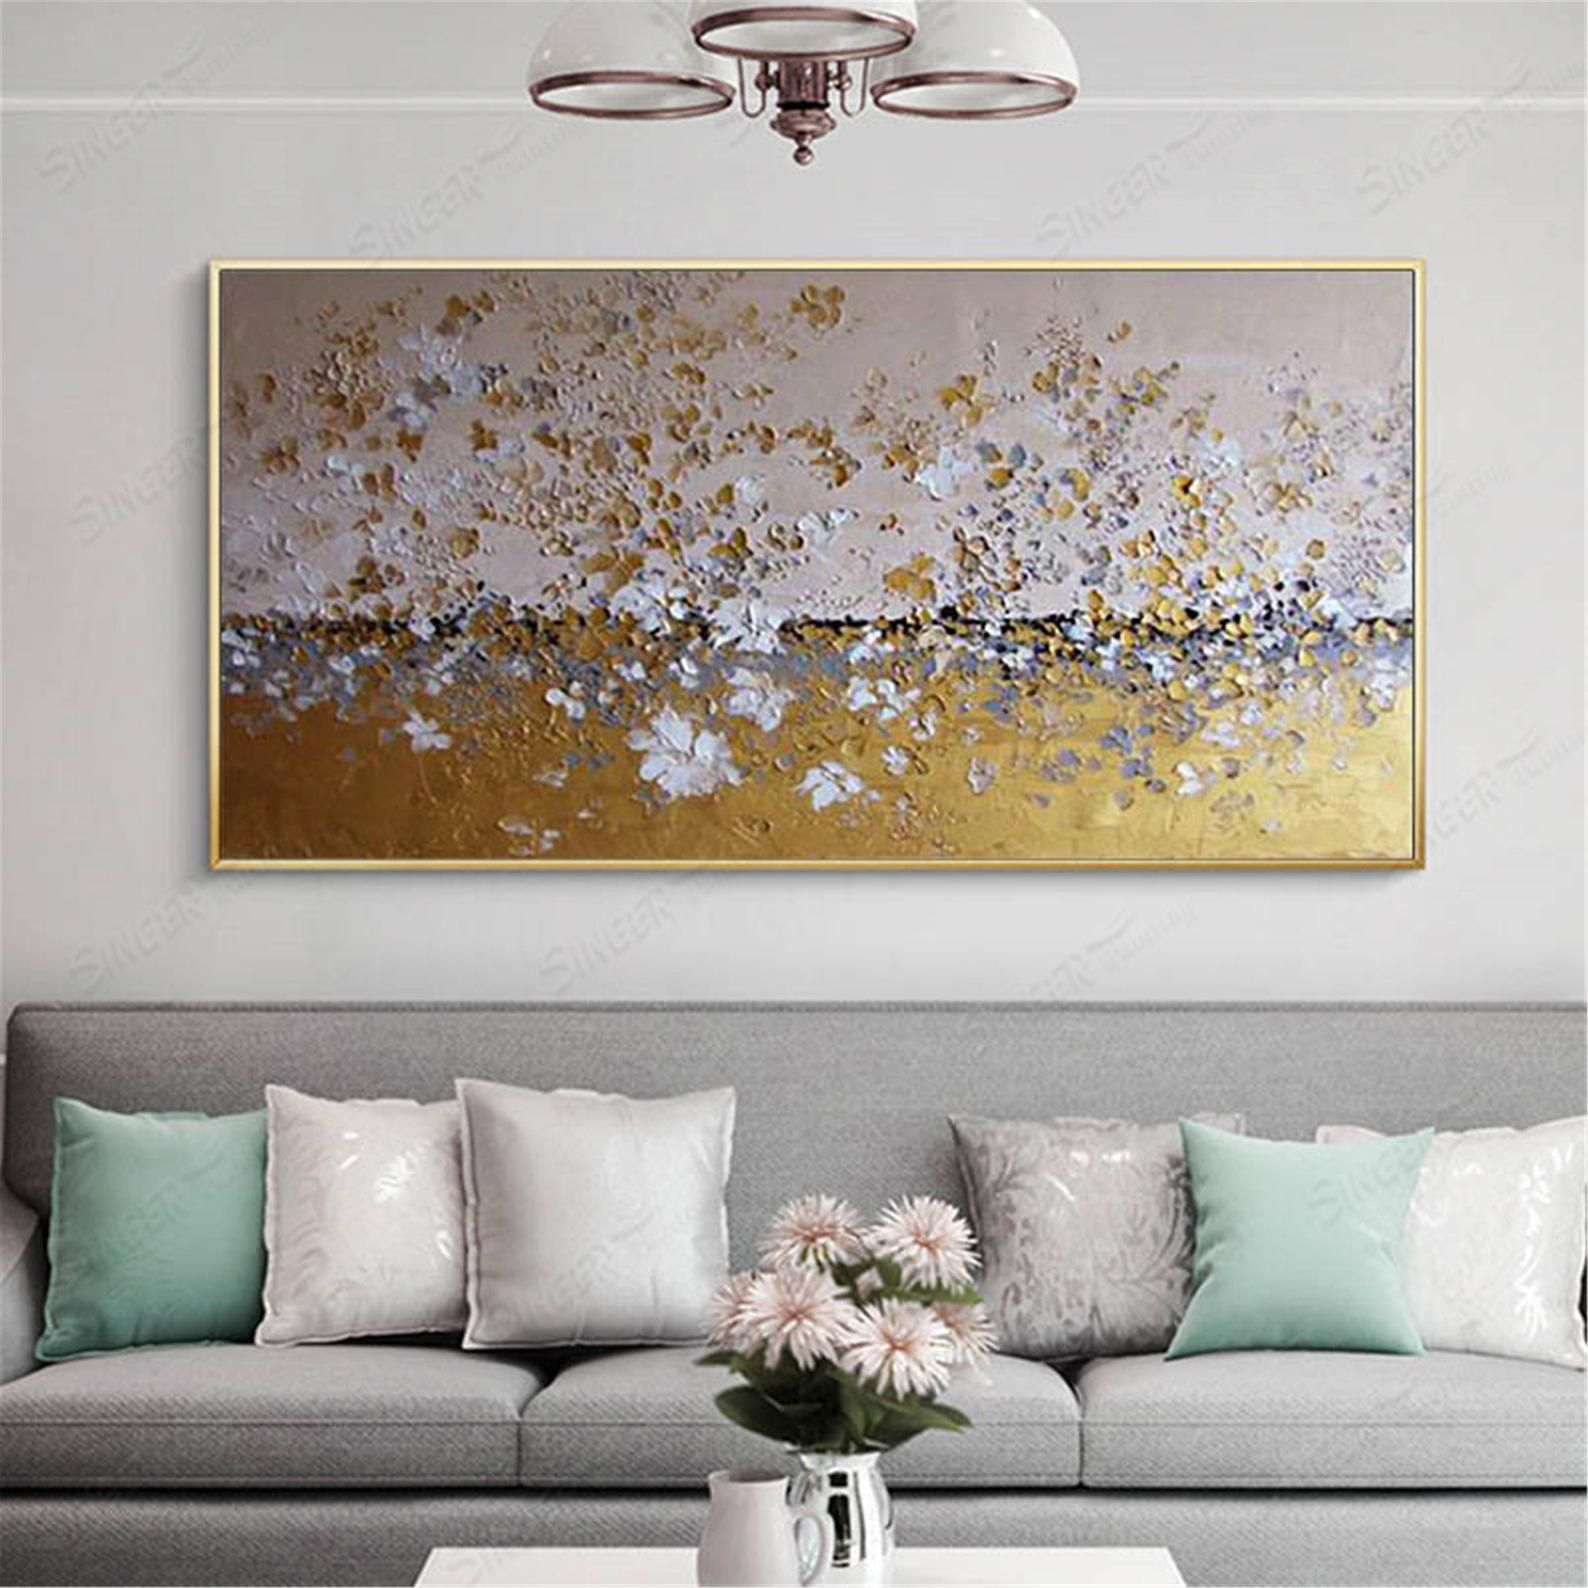 Gold Art Abstract Painting Silver Wall Art Pictures For Living Etsy In 2020 Textured Wall Art Silver Wall Art Wall Art Pictures #silver #living #room #wall #decor